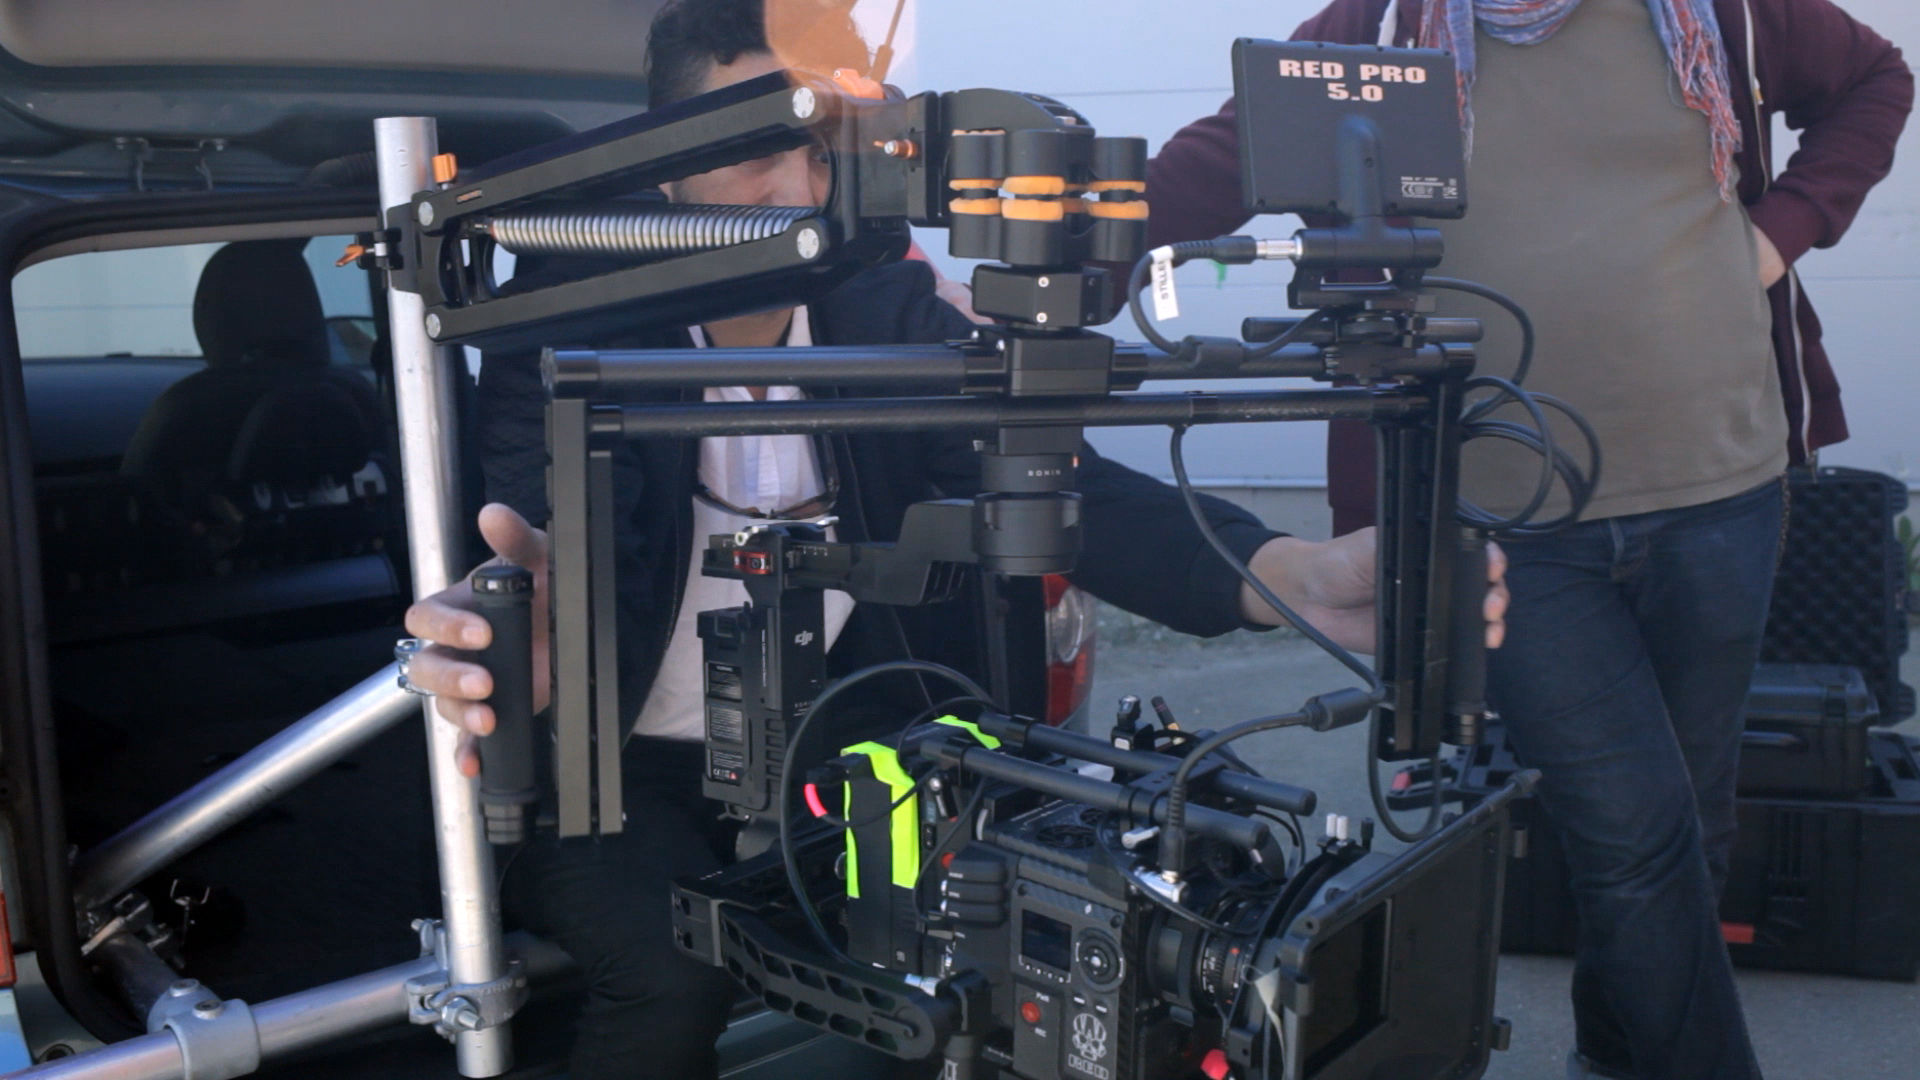 The Nostromo attached to a simple speed rail rig for a car shot.